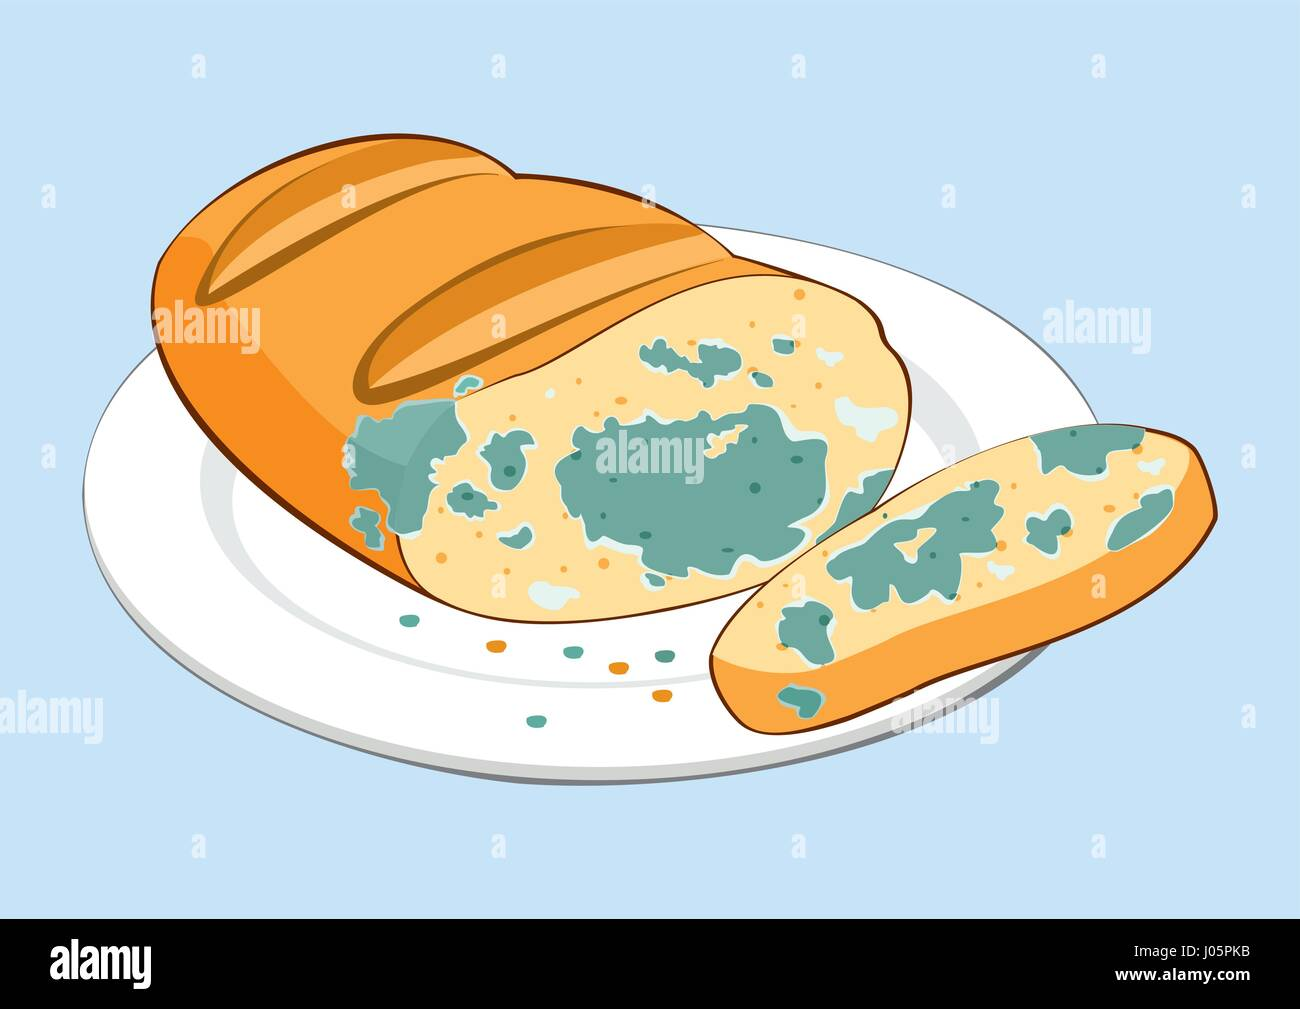 Inedible mouldy piece of bread on plate. Isolated vector illustration - Stock Vector